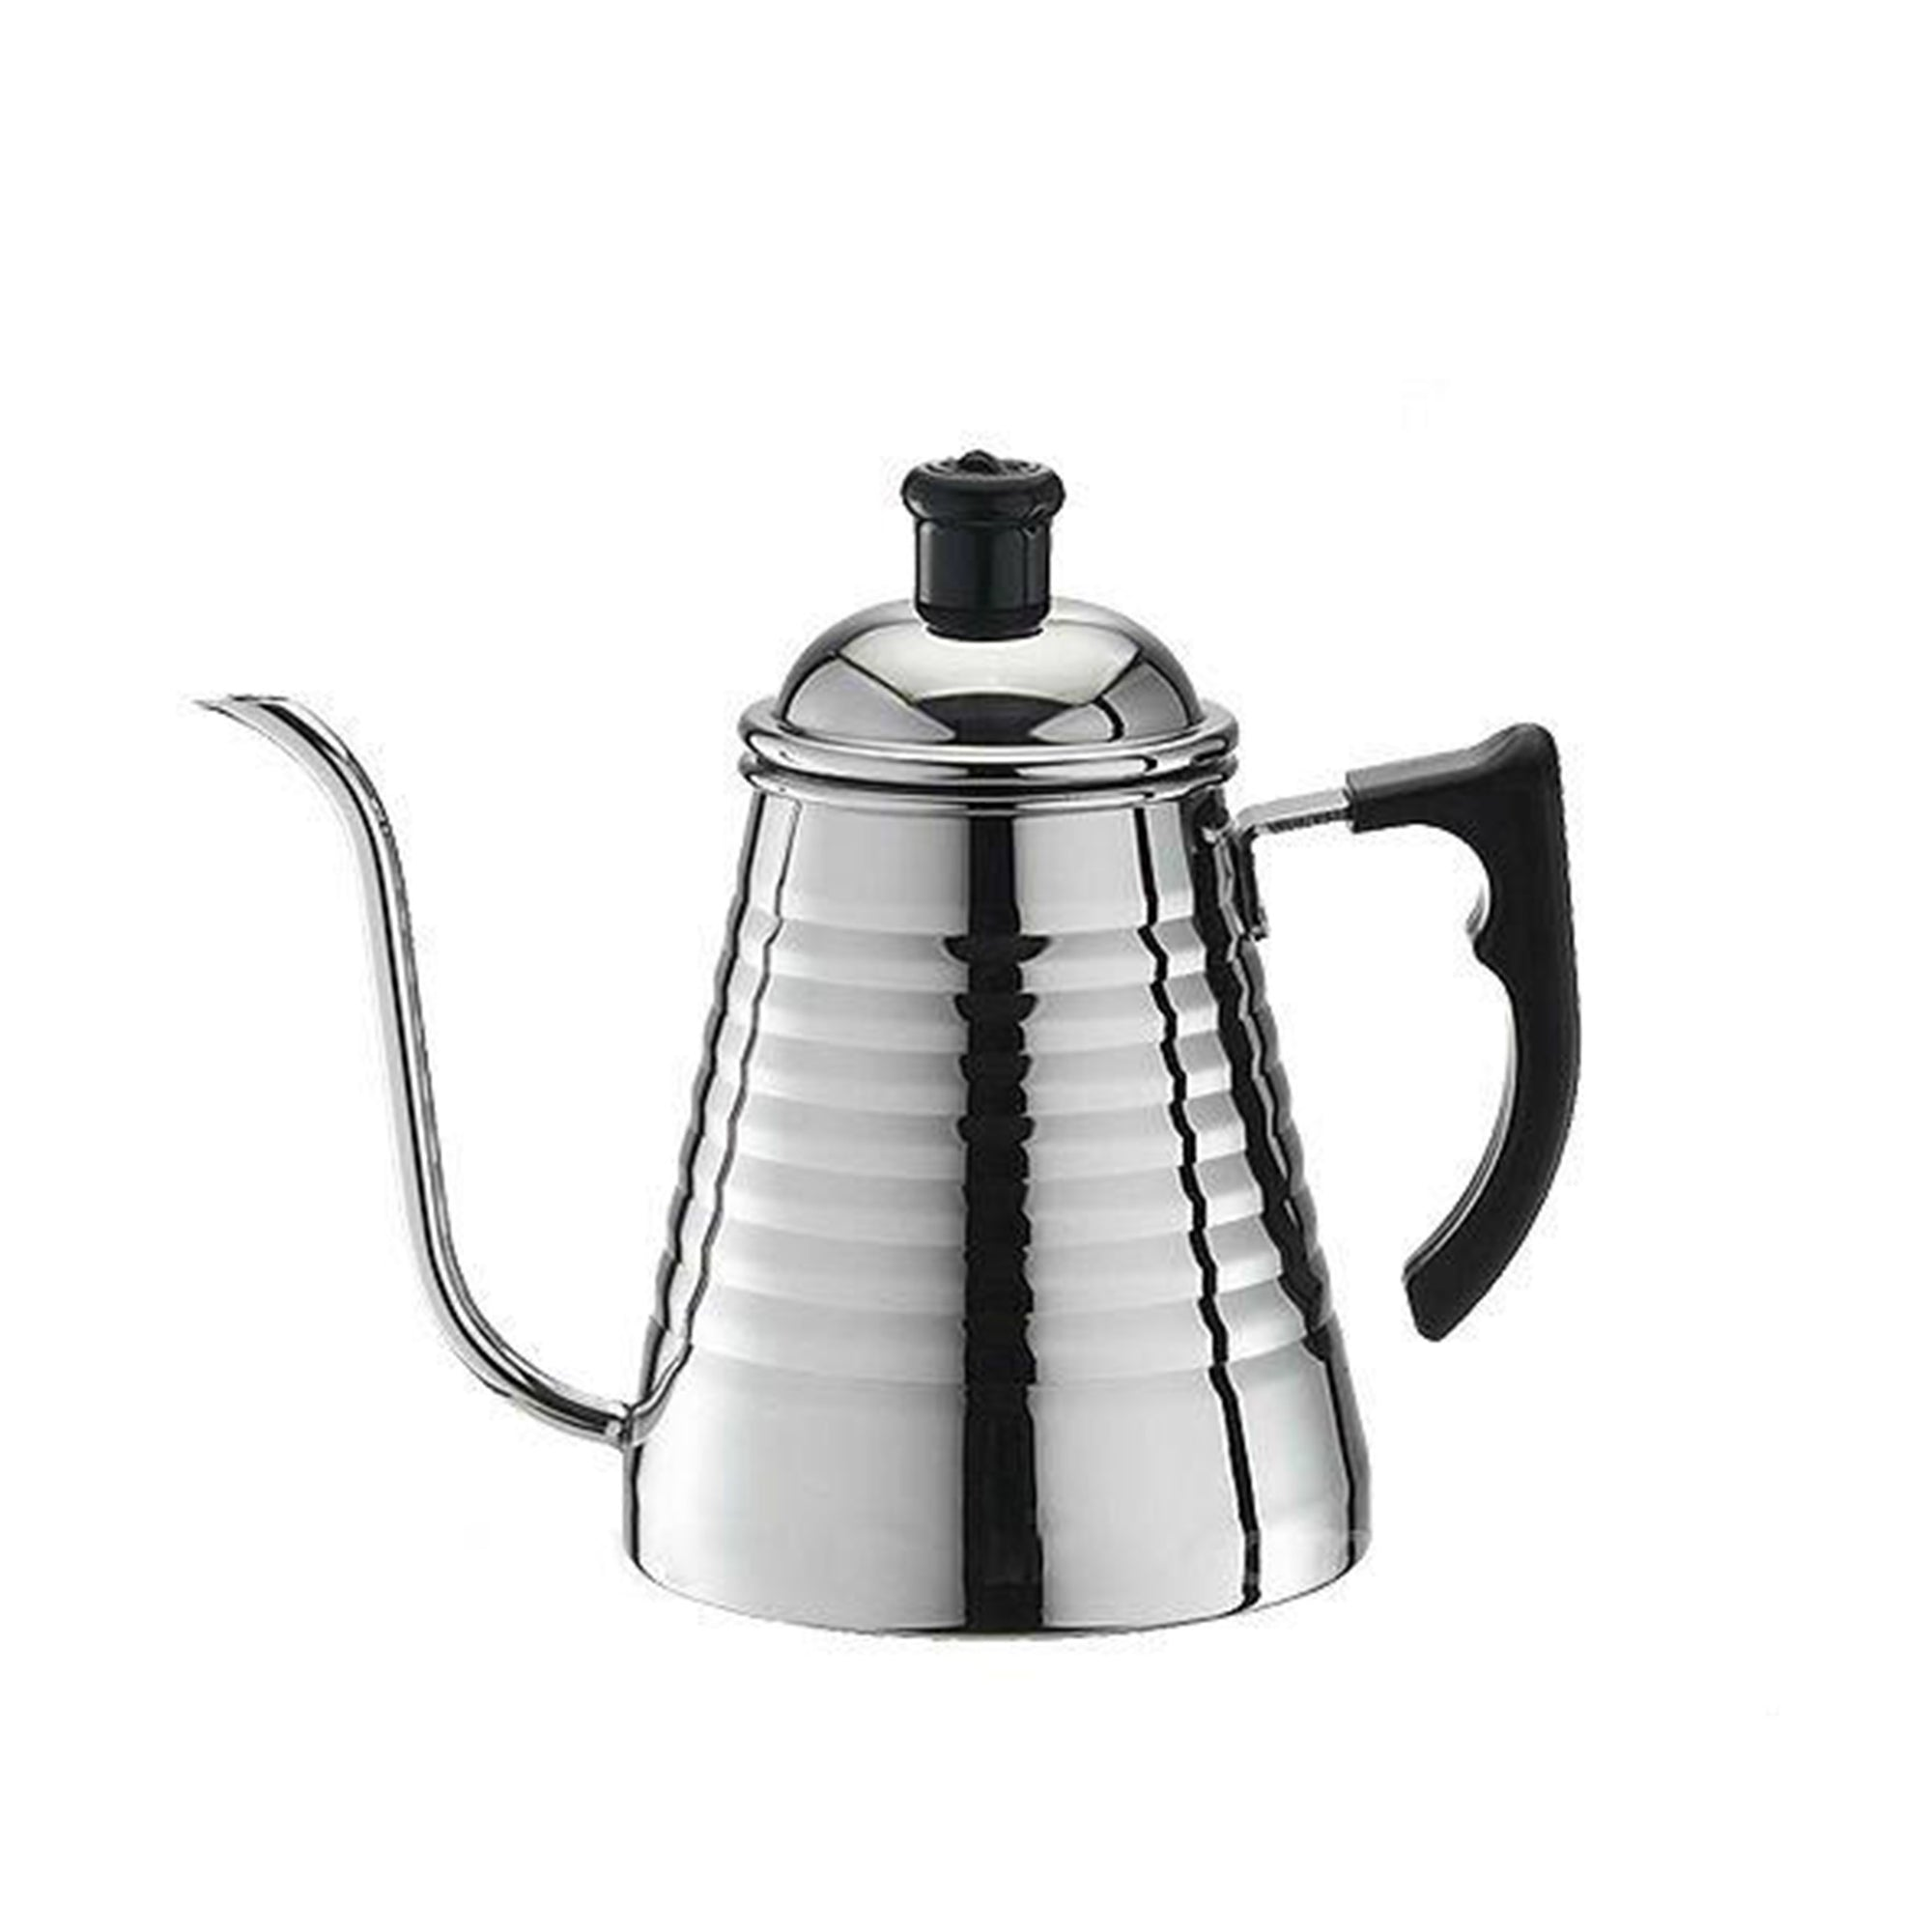 Kettle Tower 1L - Tiamo - Espresso Gear